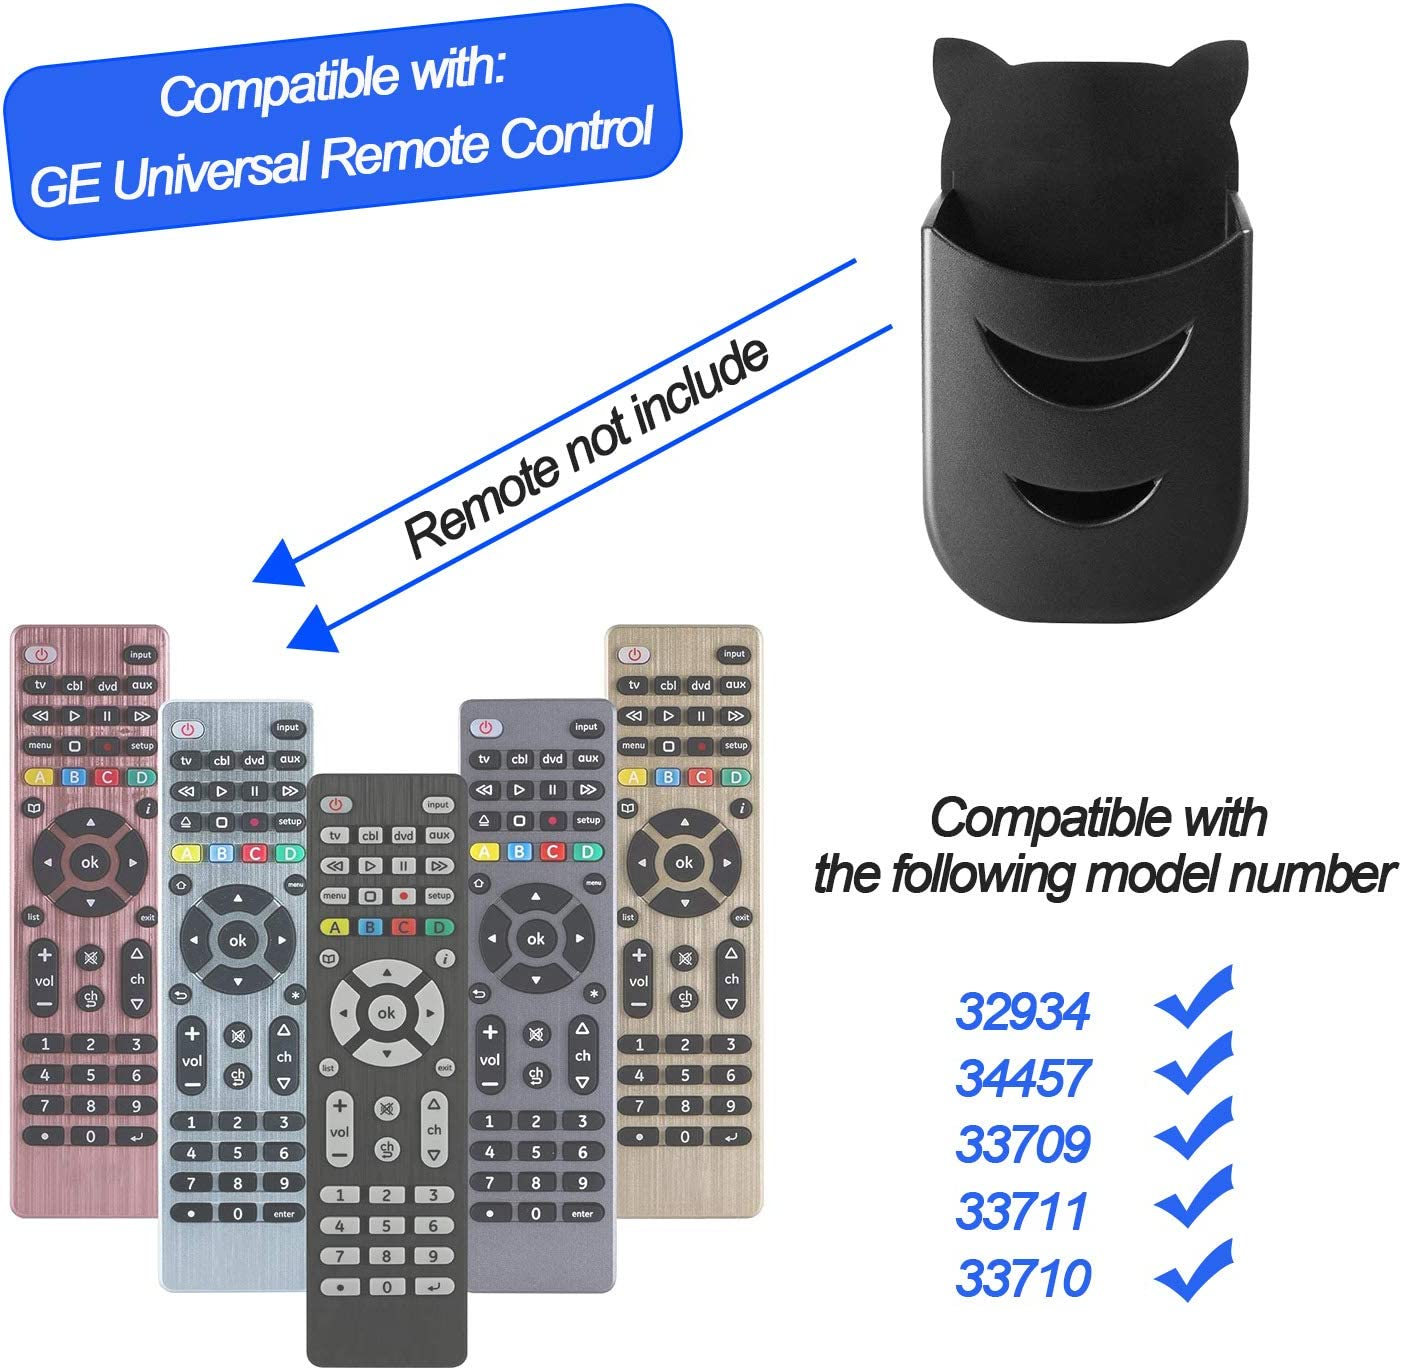 Remote Control Holder for GE Universal Remote Control, TV Remote Control Holder Compatible with GE 4-Device Universal Remote (2 Pack)